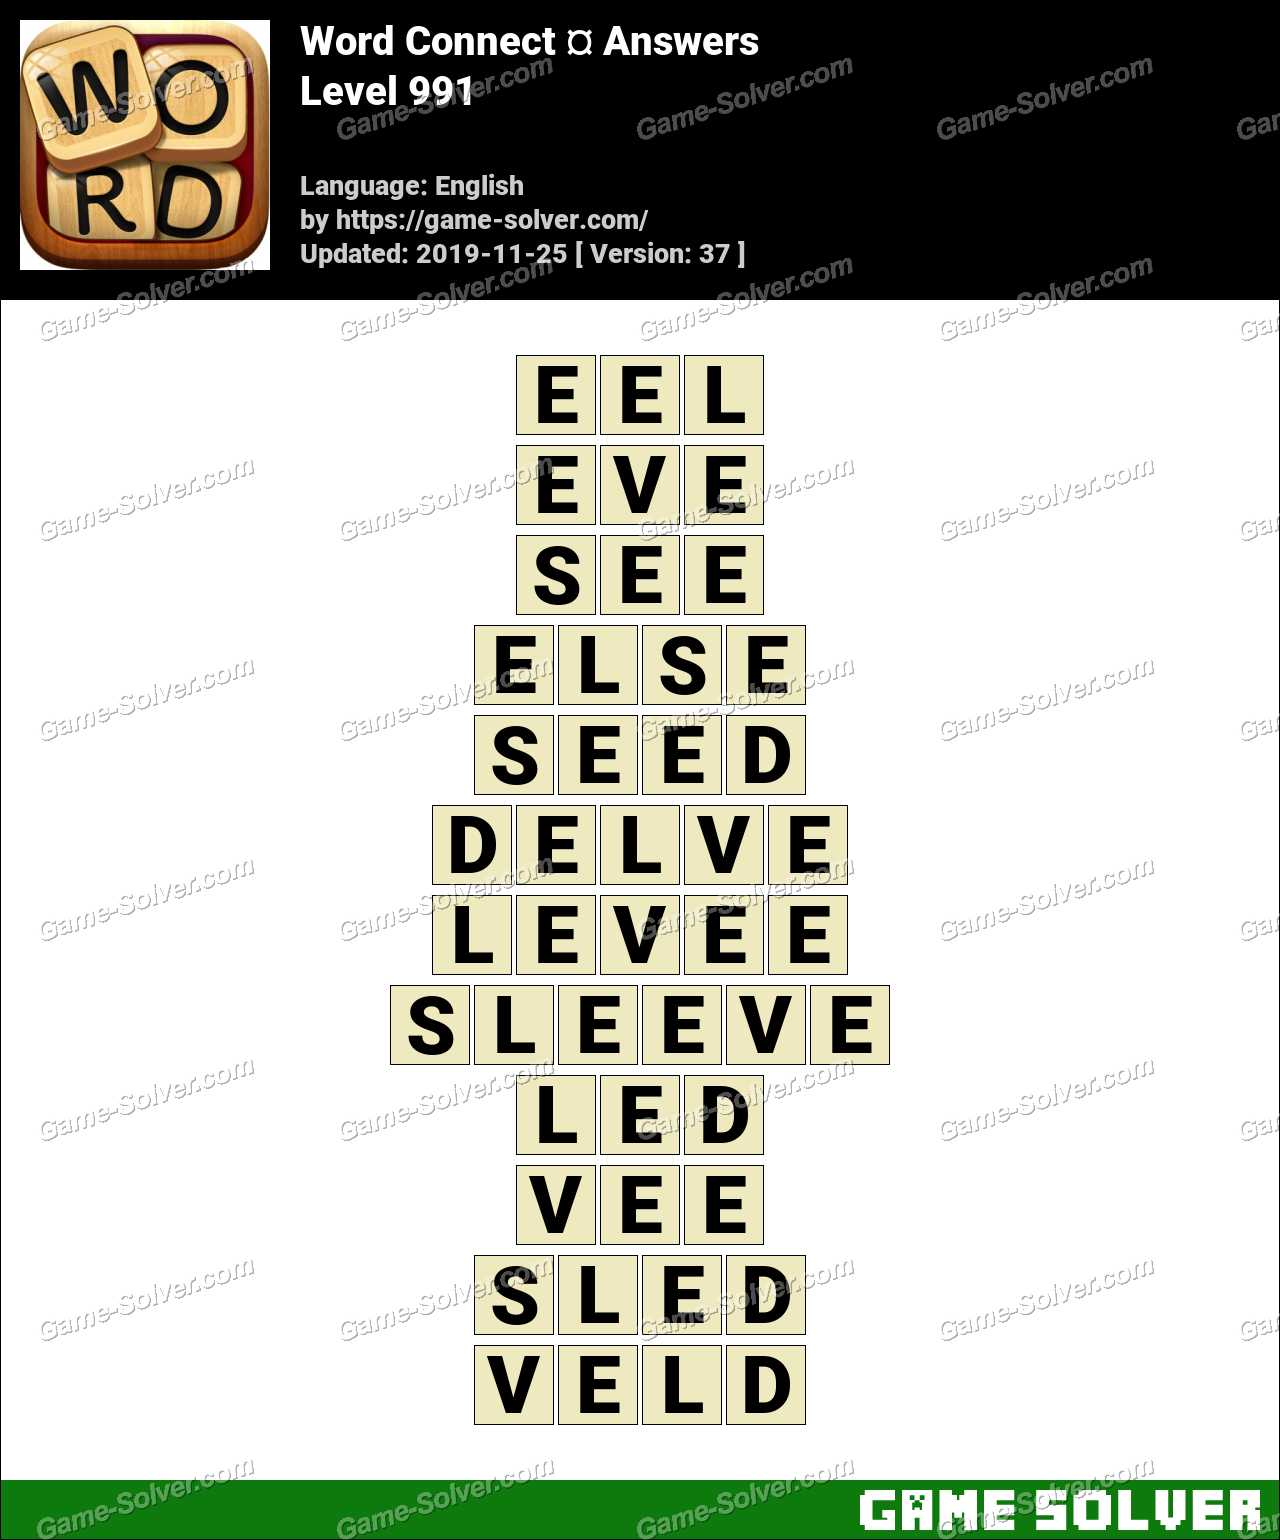 Word Connect Level 991 Answers